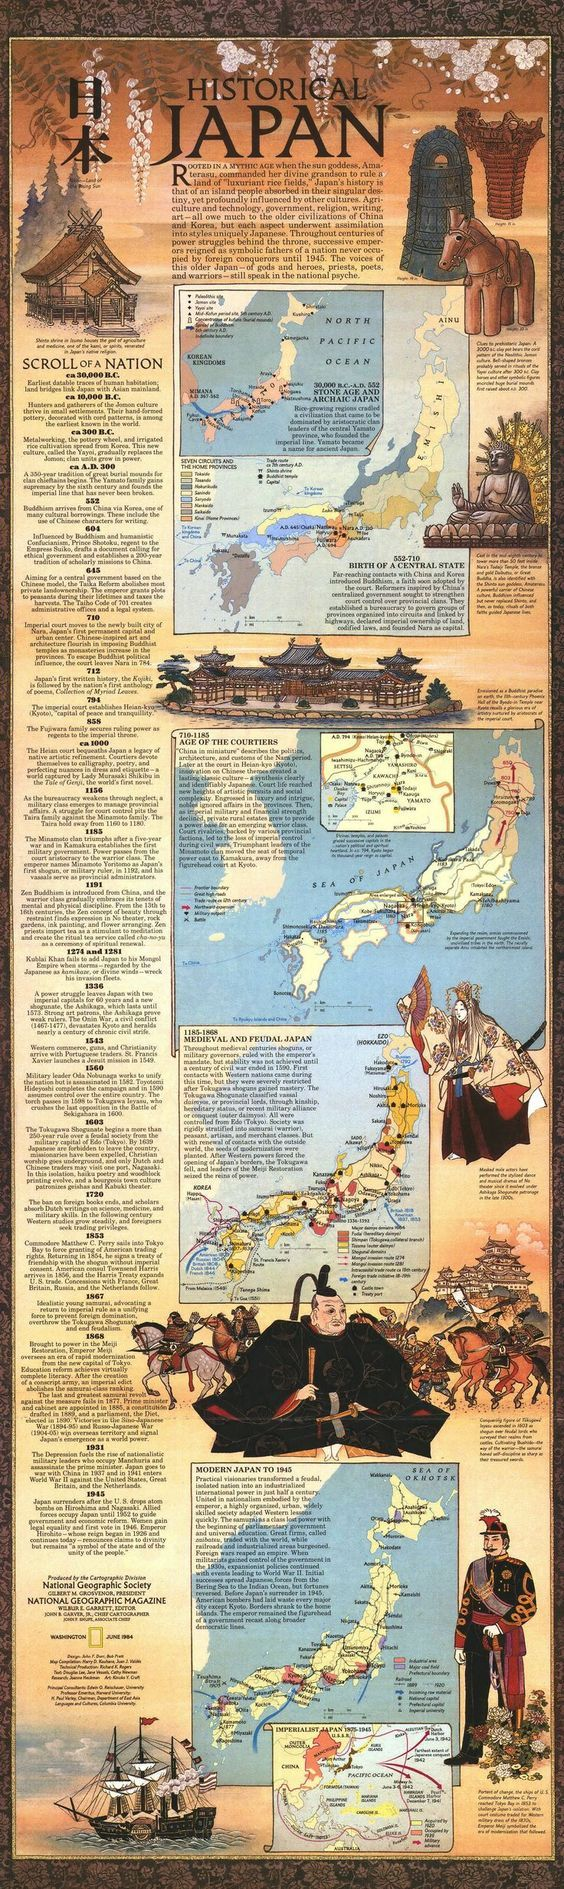 History of Japan Infographic